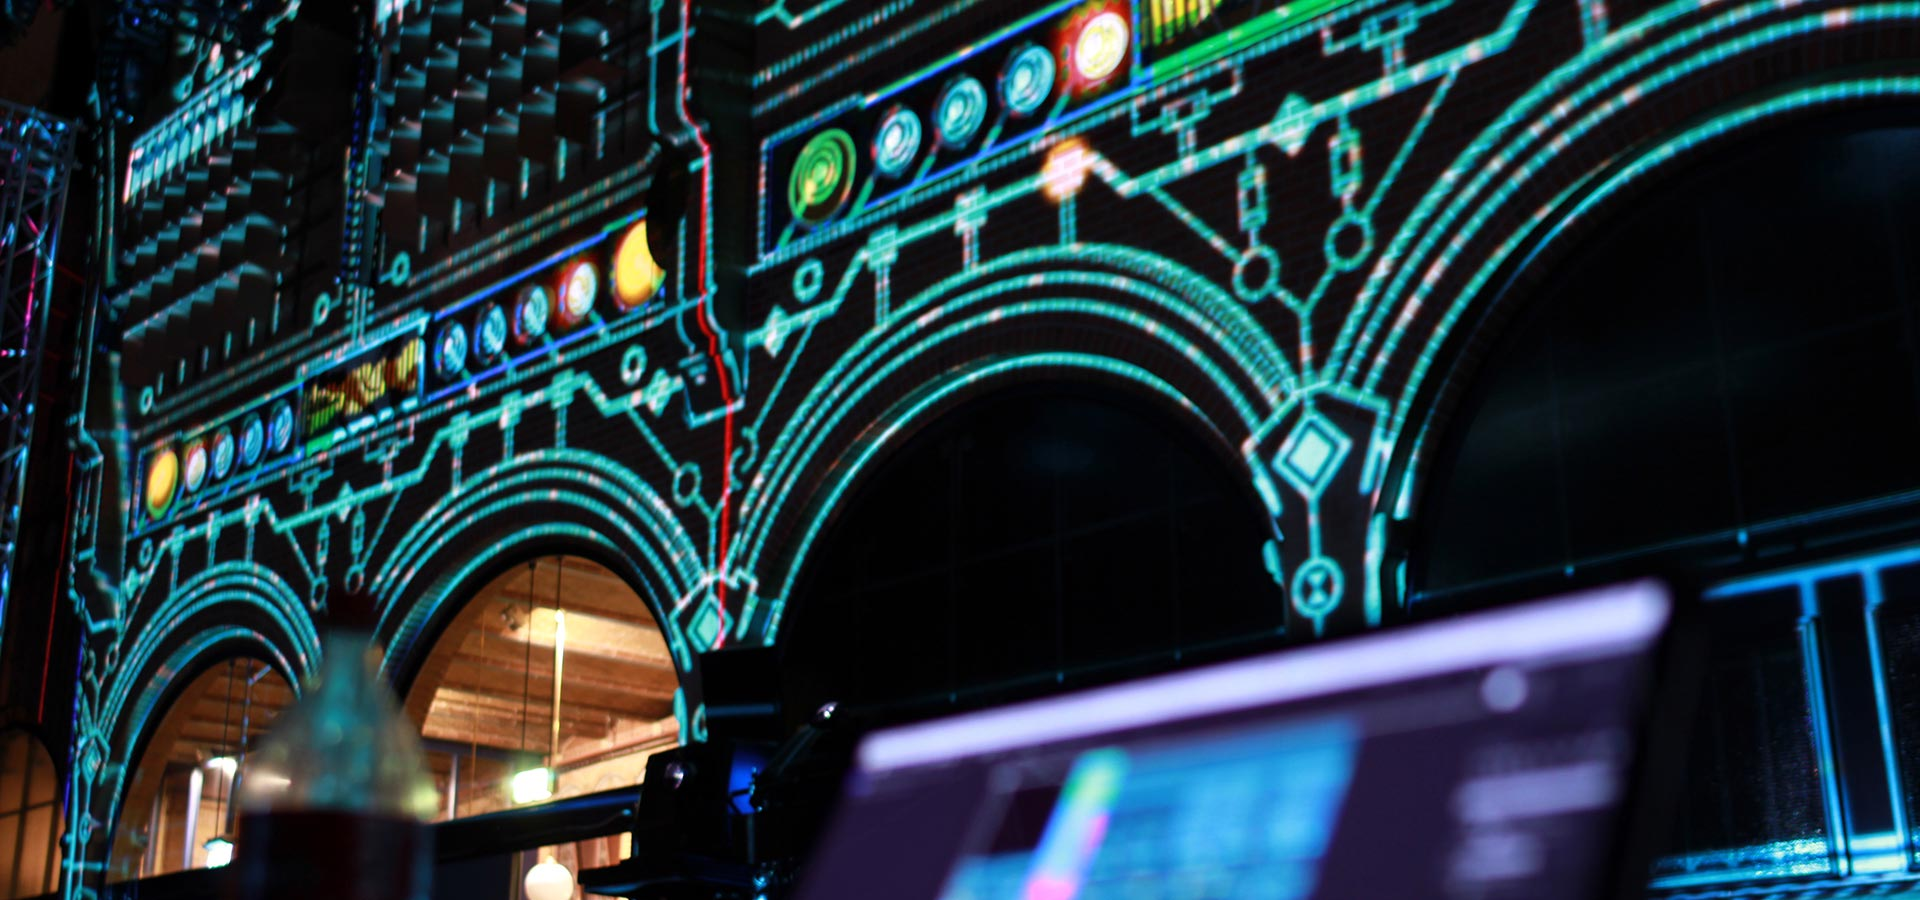 Detail of the projection mapping experience created by Mr.Beam for Bose Pro at the Beurs van Berlage Amsterdam